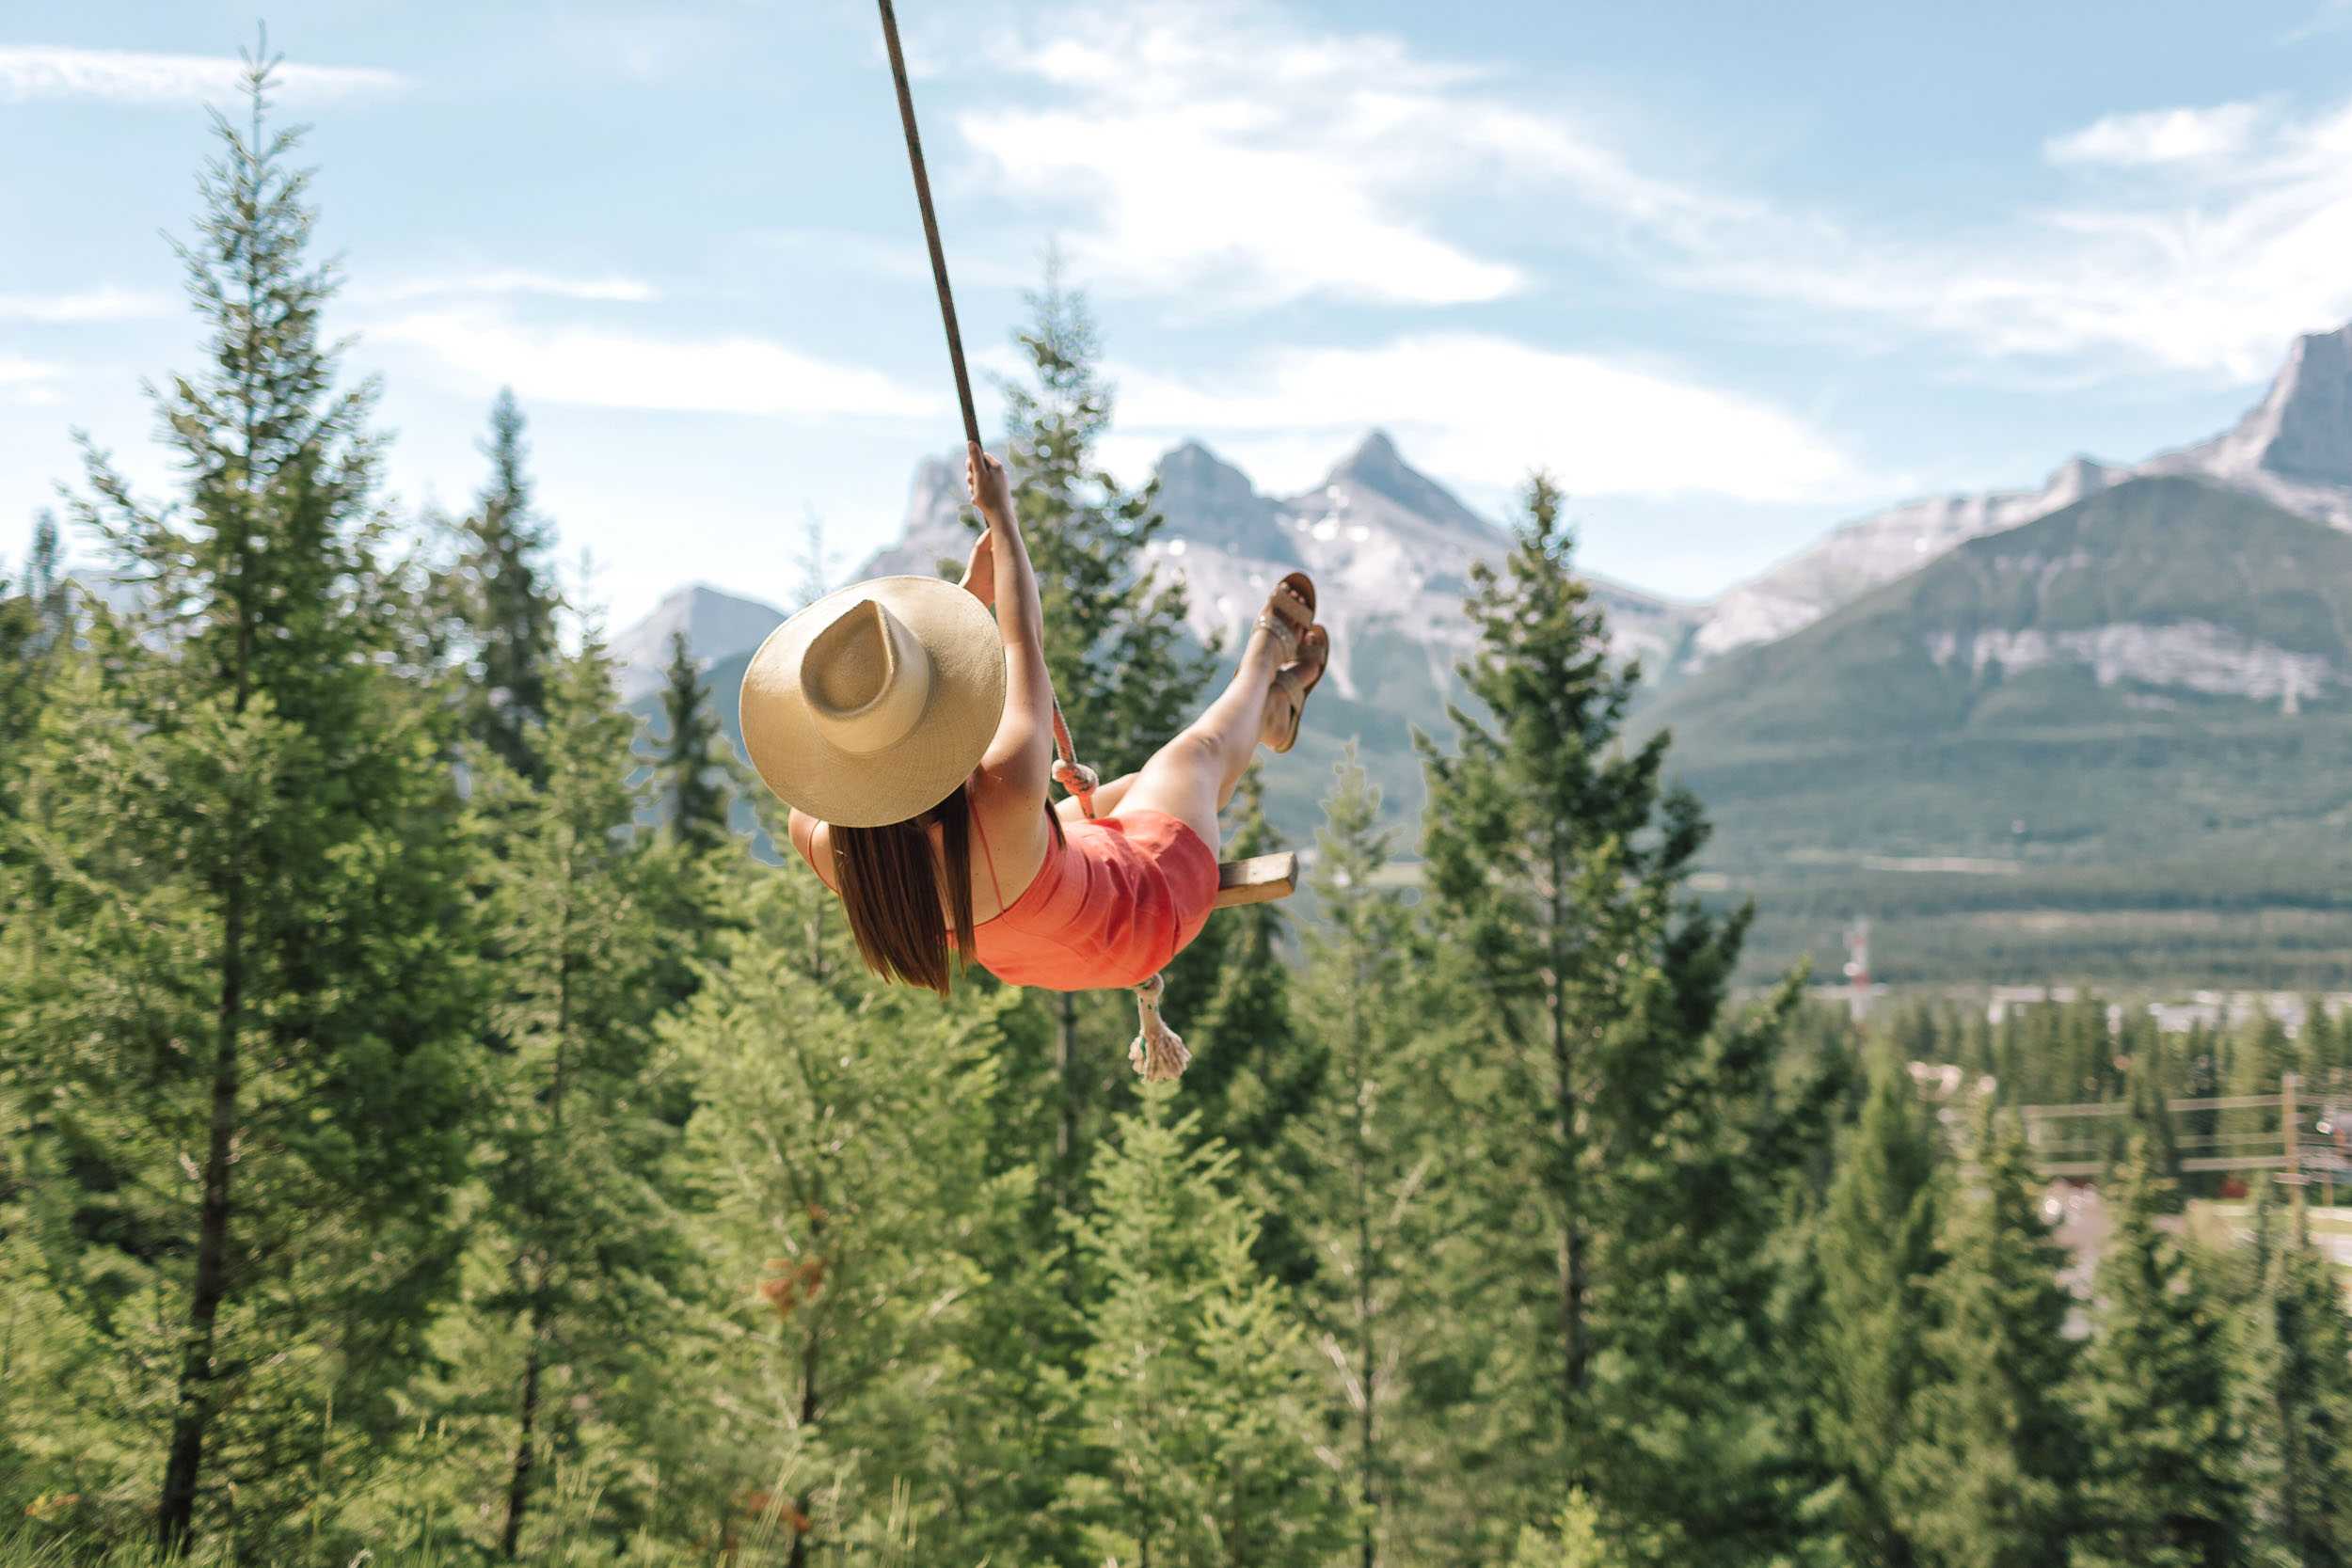 The most Instagrammable place in Banff, Canada: the Canmore rope swing